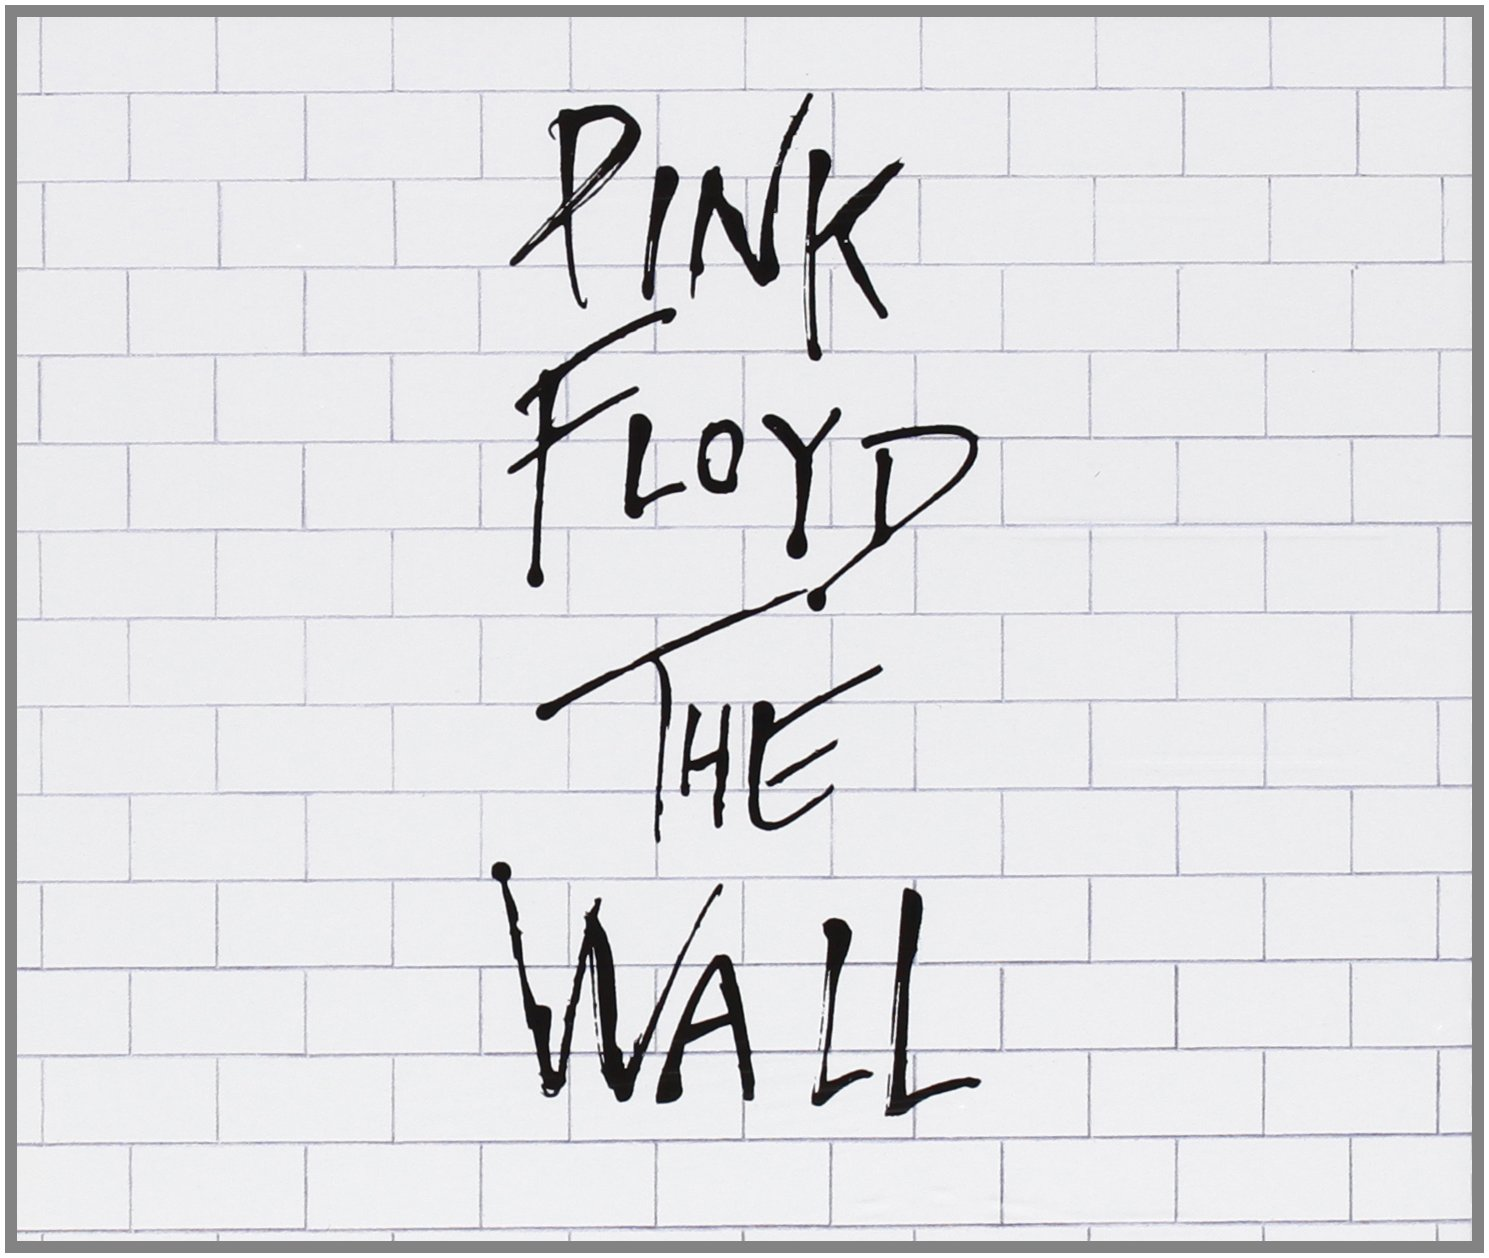 pink floyd the wall download 320